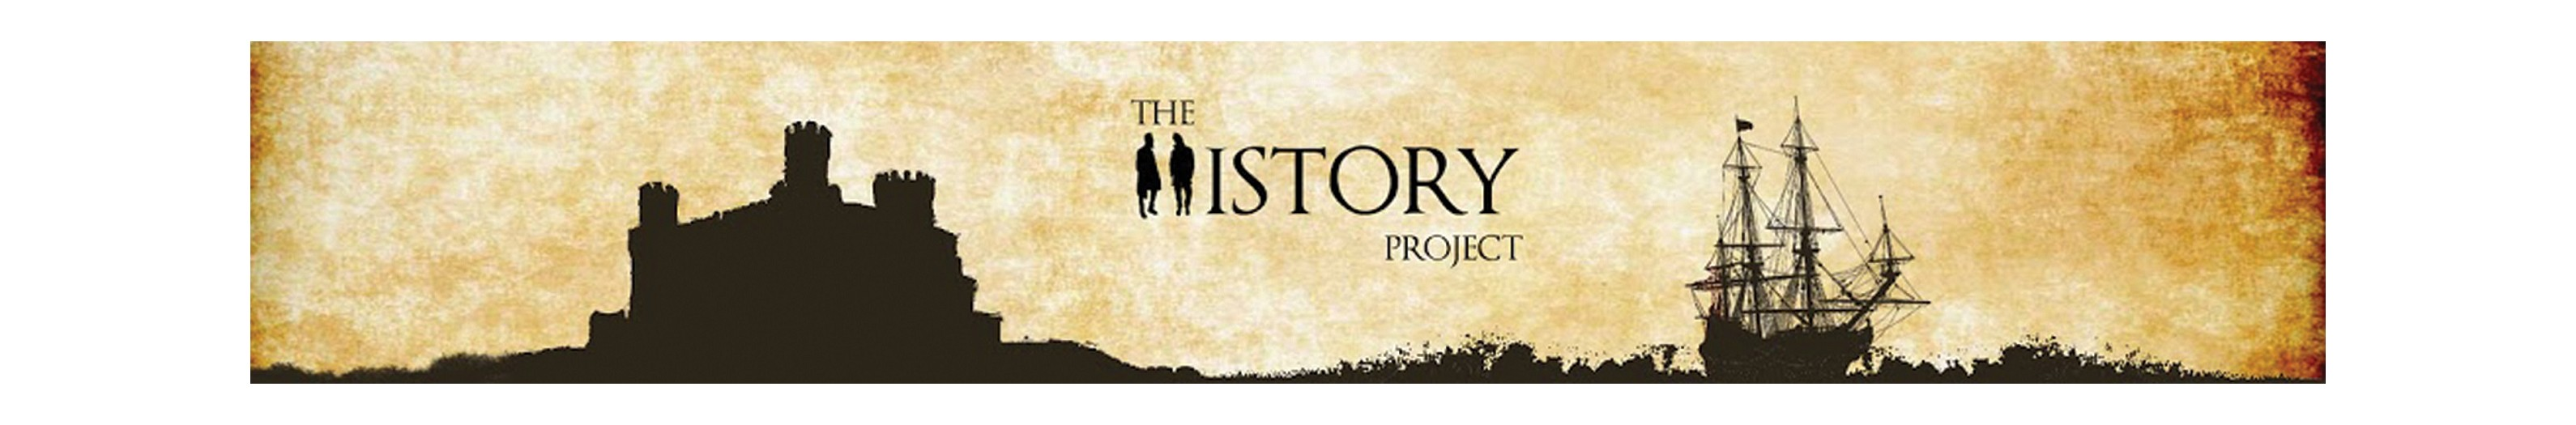 The History Project - April